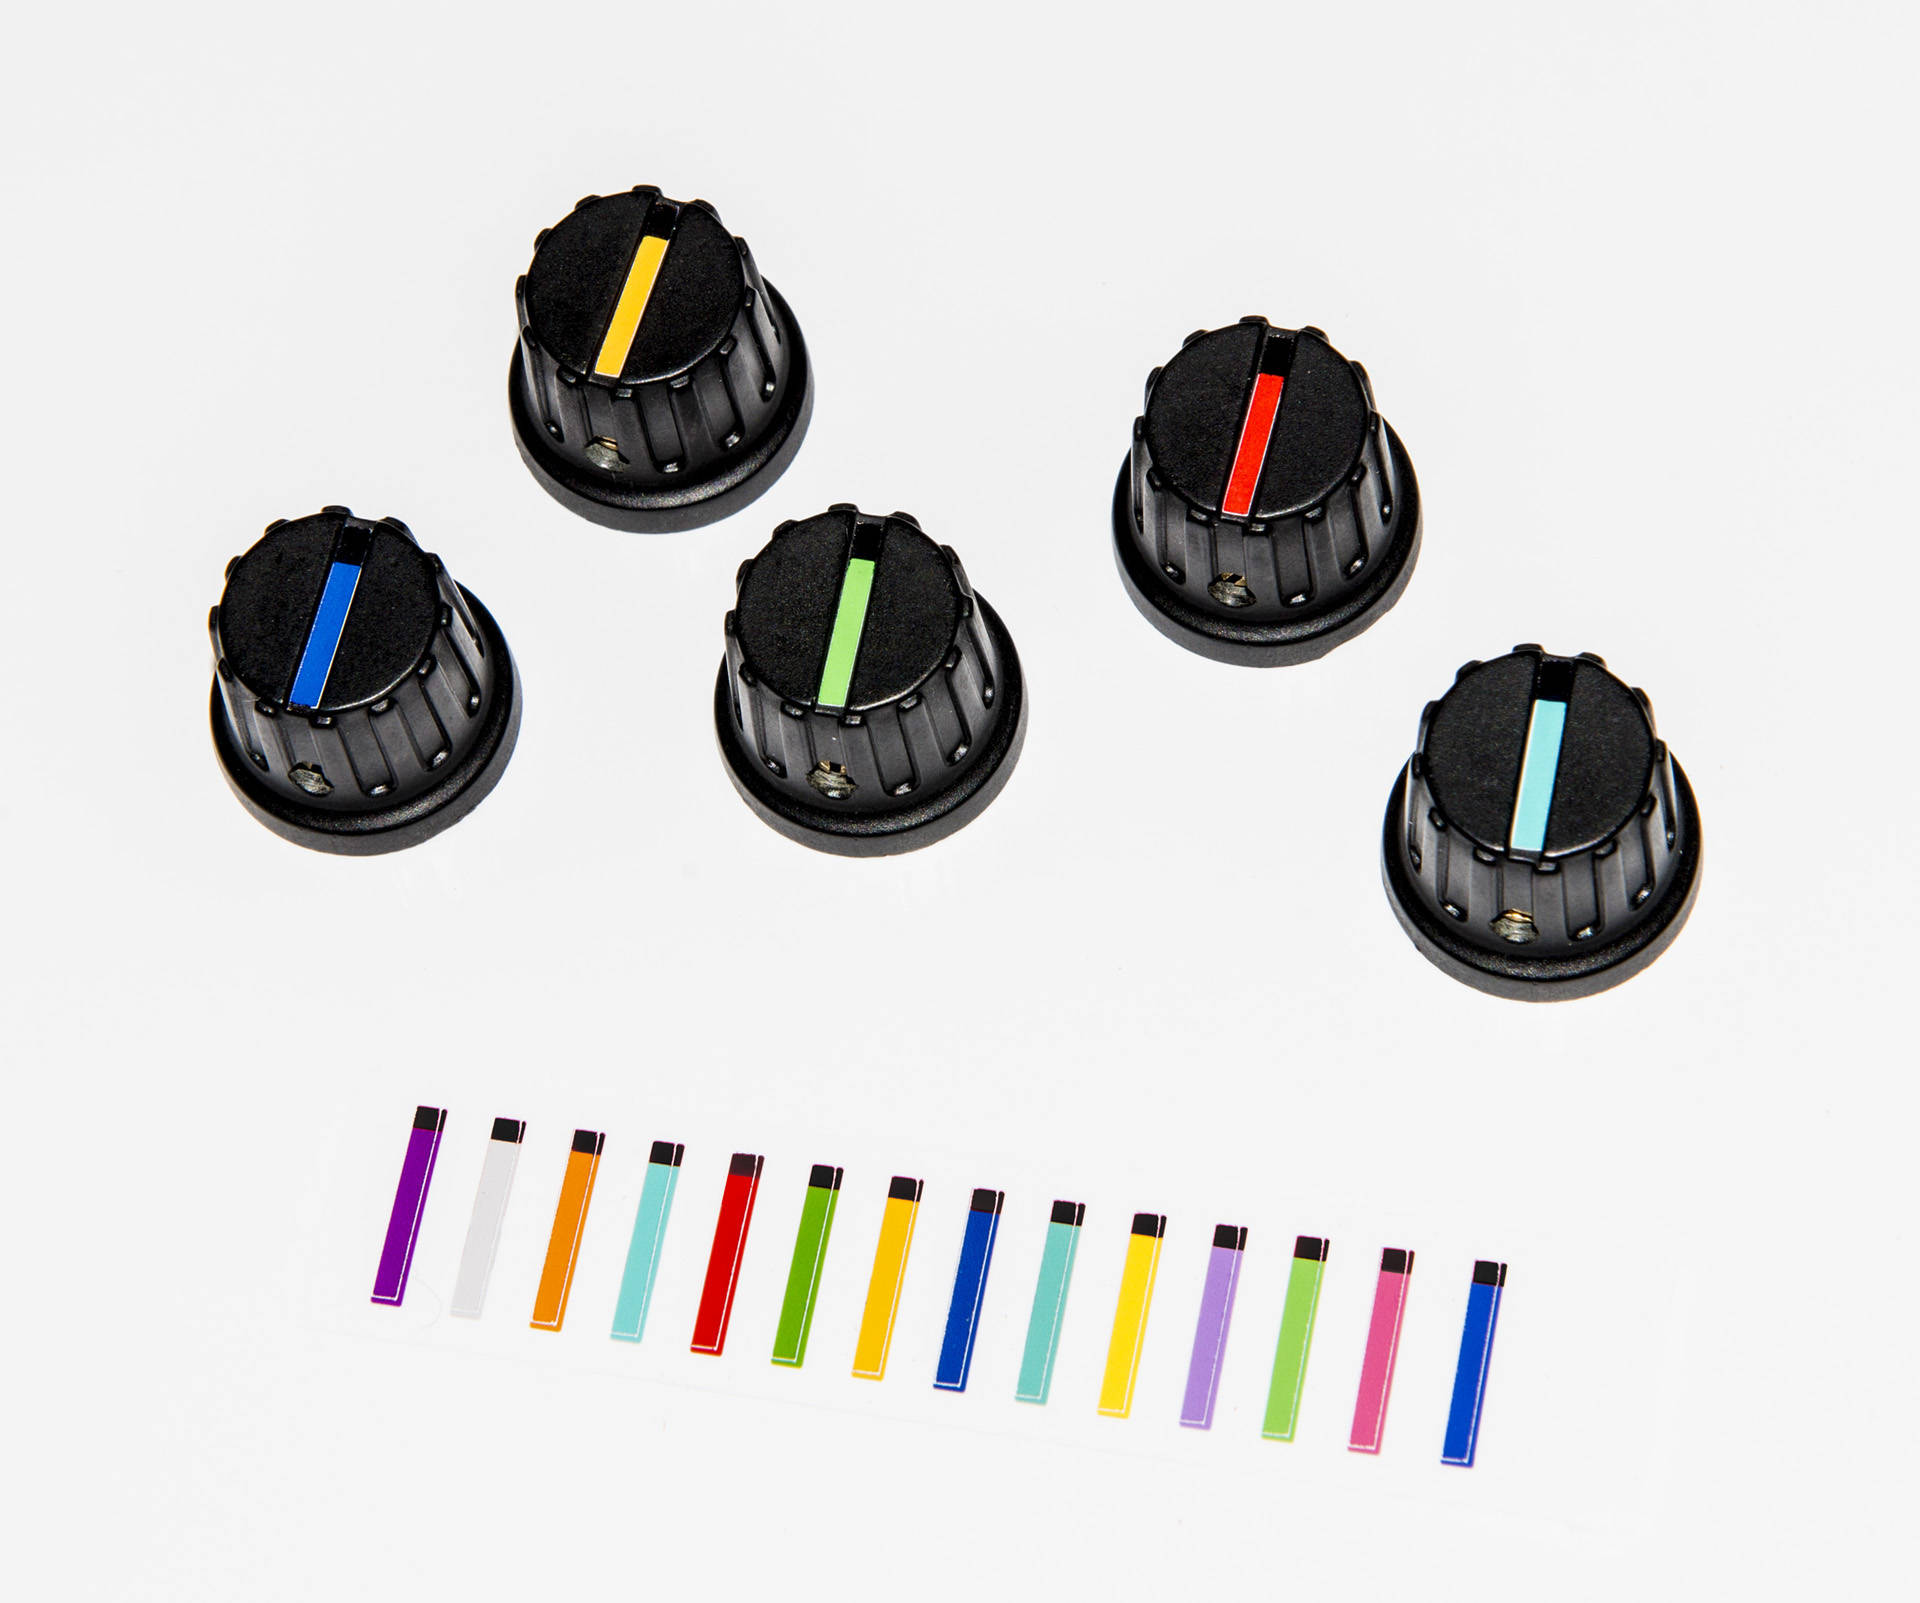 Sim Racing Decals/Labels for button box/steering wheel - Sim